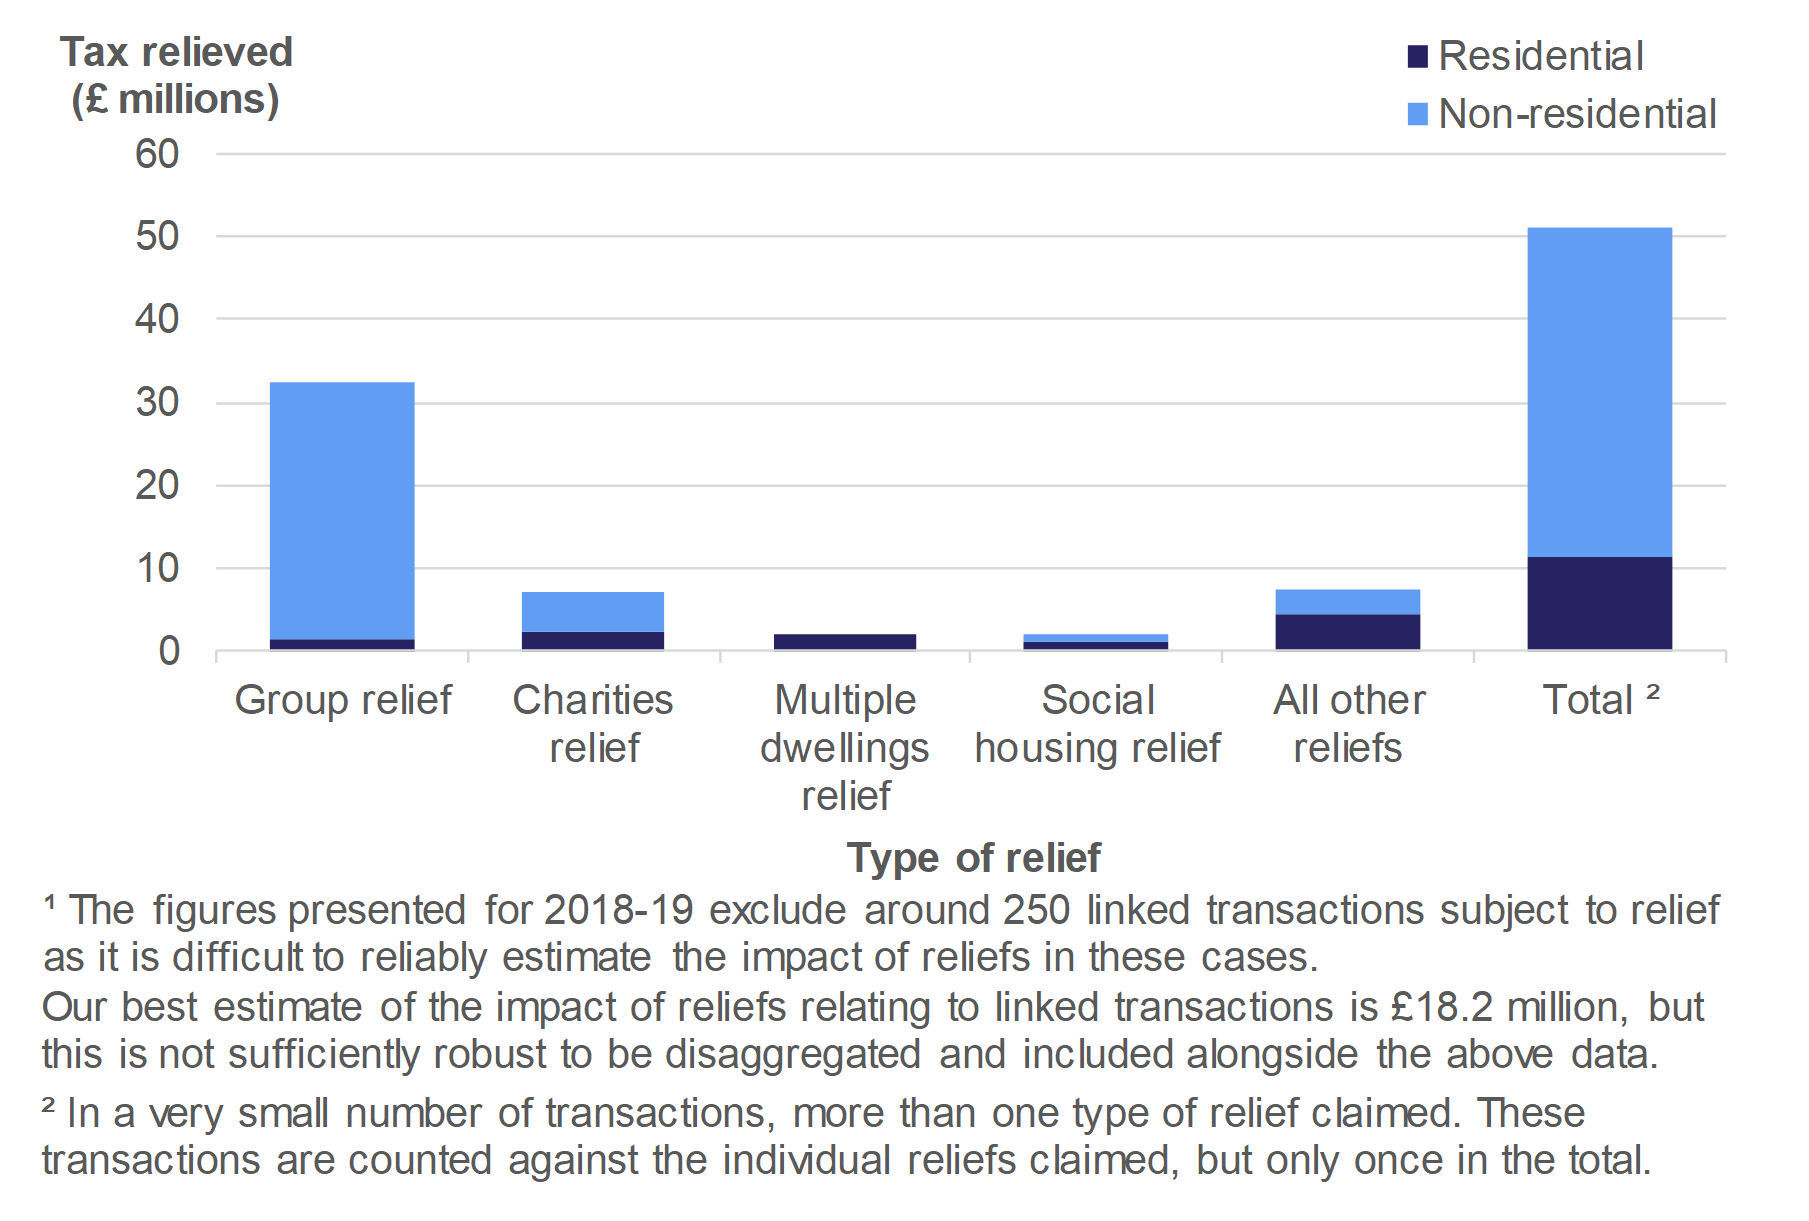 Figure 5.2 shows the amount of tax relieved on residential and non-residential transactions effective in April 2018 to March 2019, by type of relief.